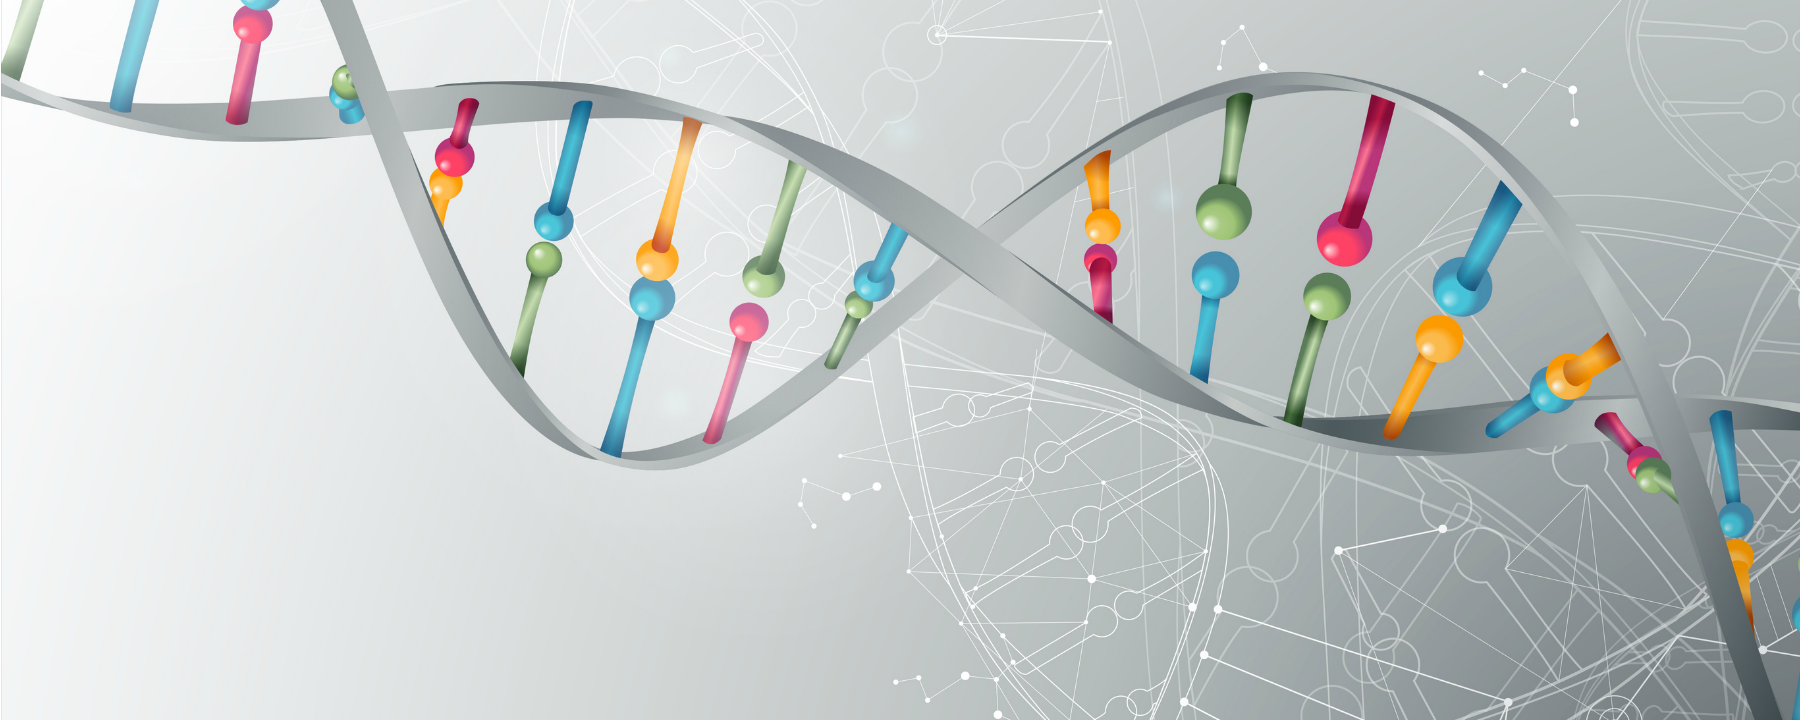 Lack of Diversity in Genetic Datasets is Risky for Treating Disease